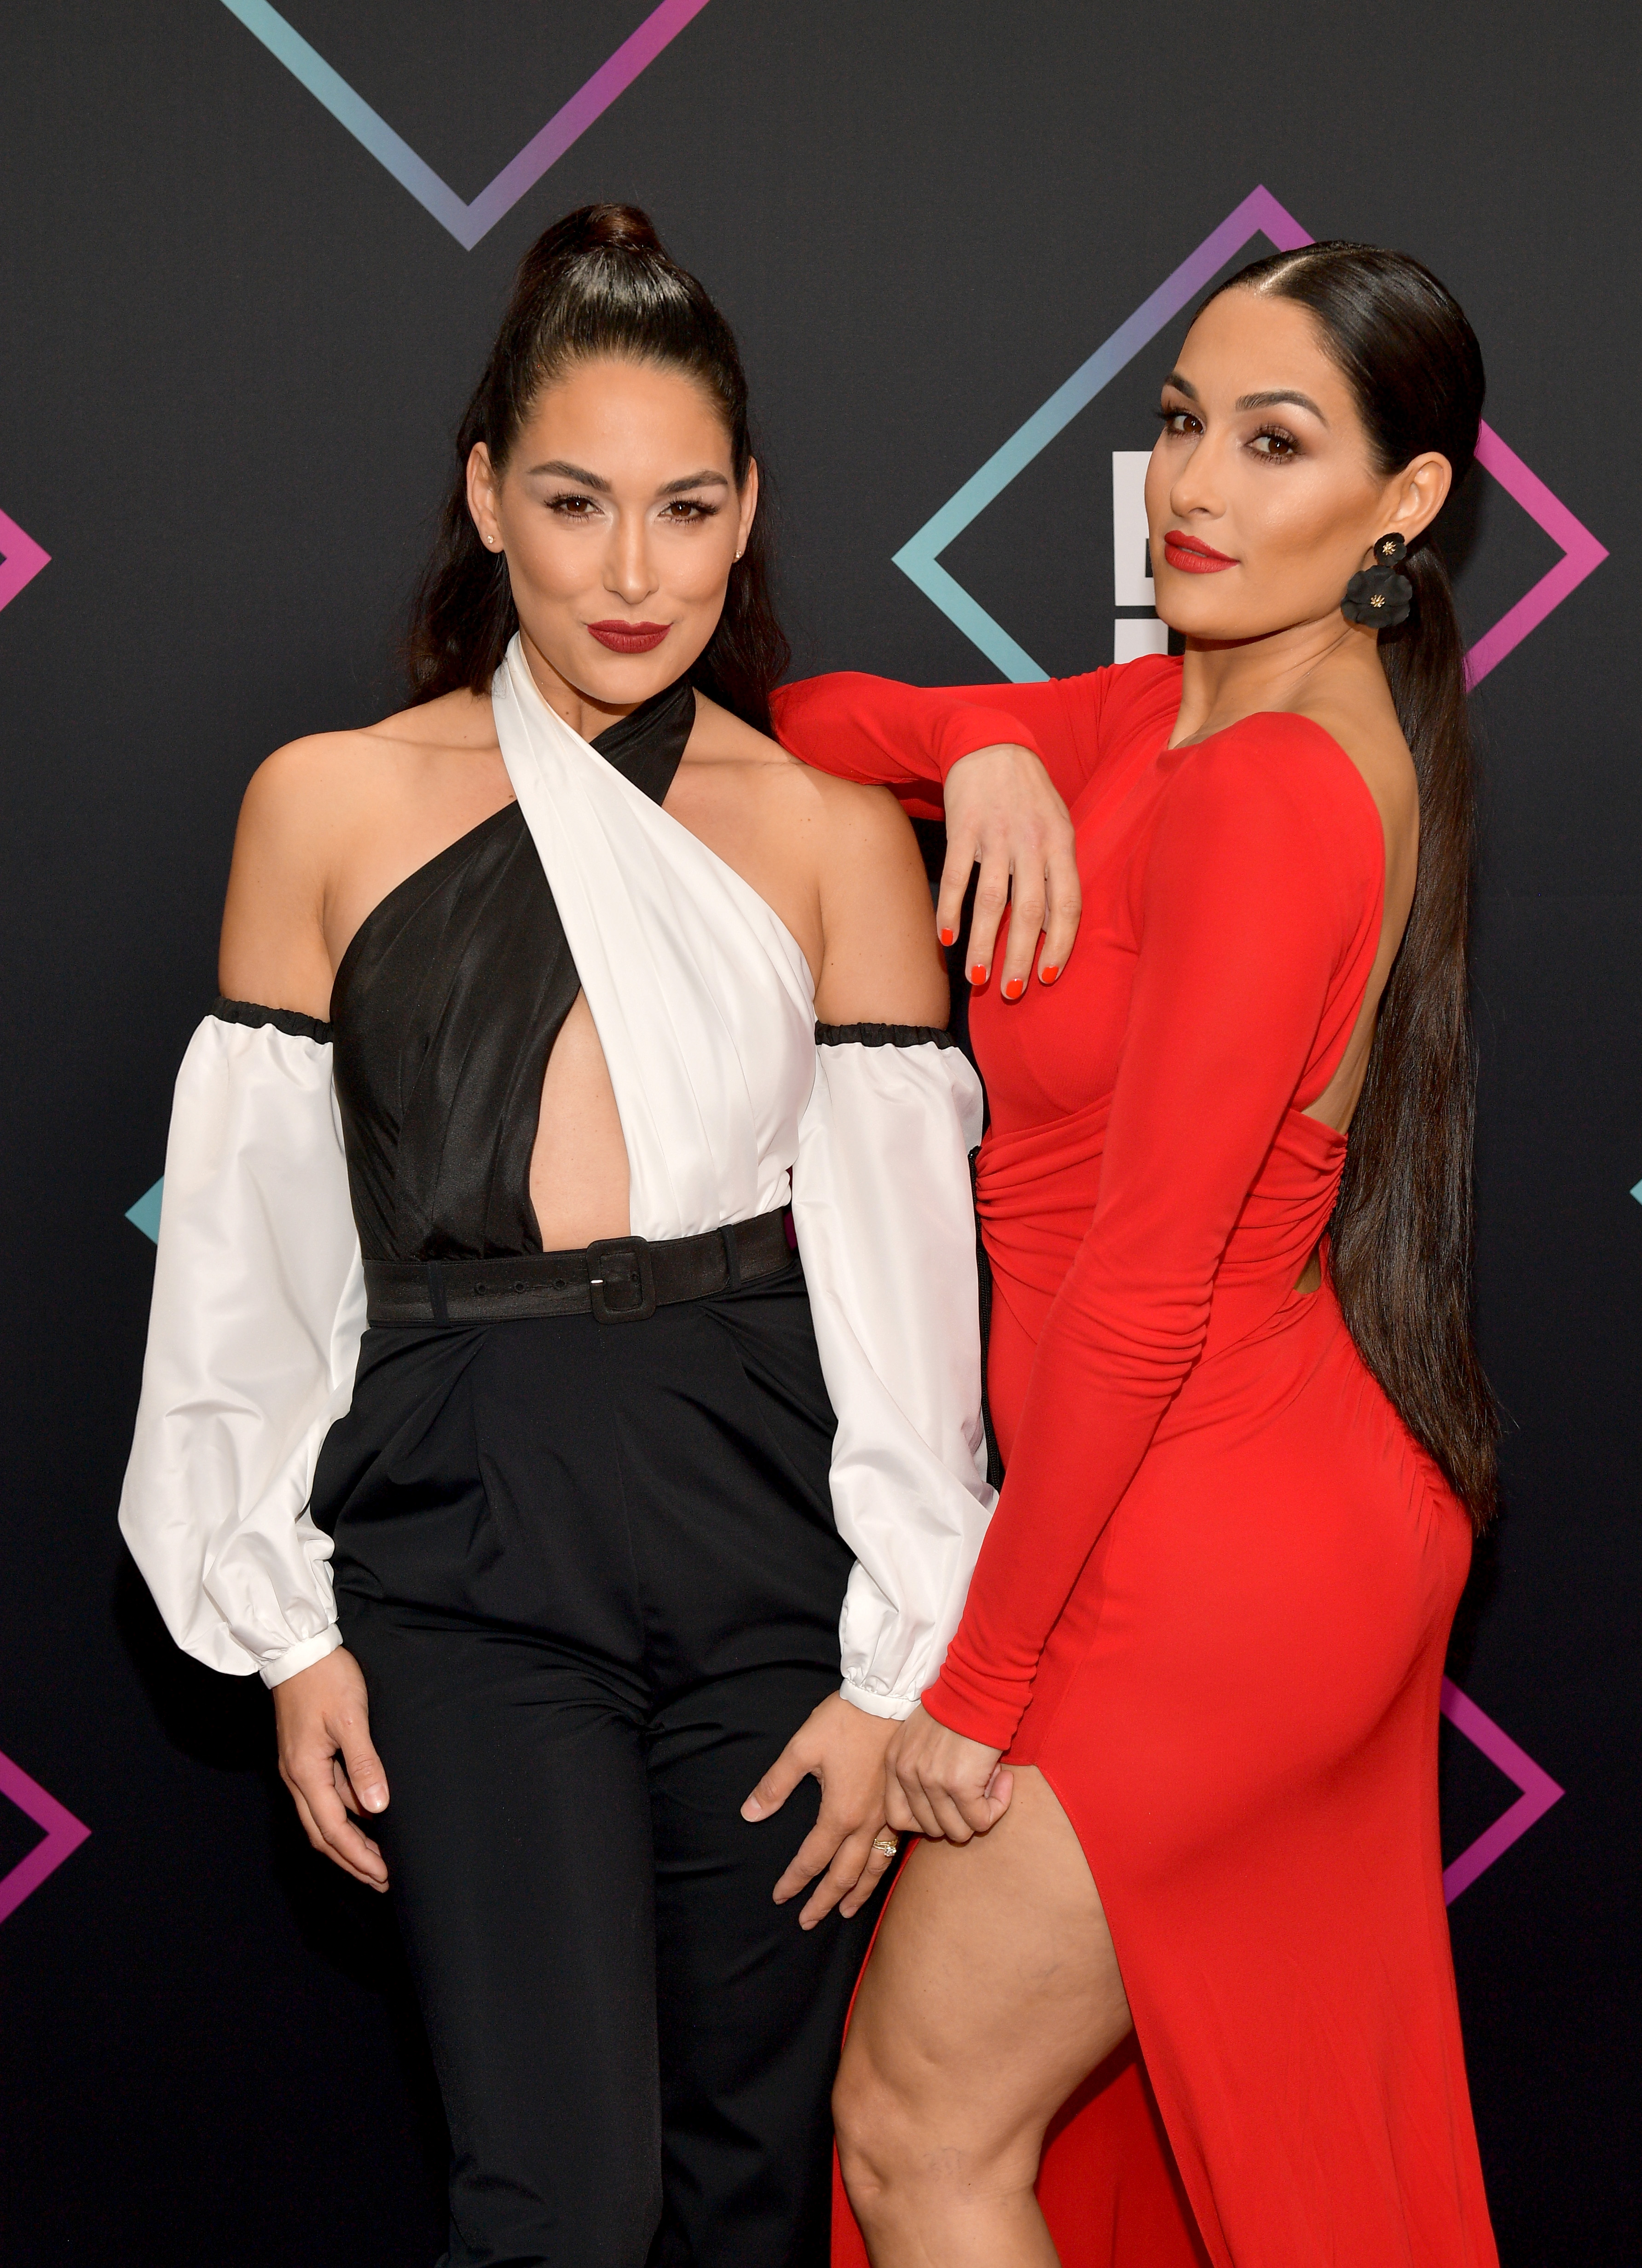 Brie Bella (L) and Nikki Bella attend the People's Choice Awards 2018 at Barker Hangar on November 11, 2018 in Santa Monica, California.